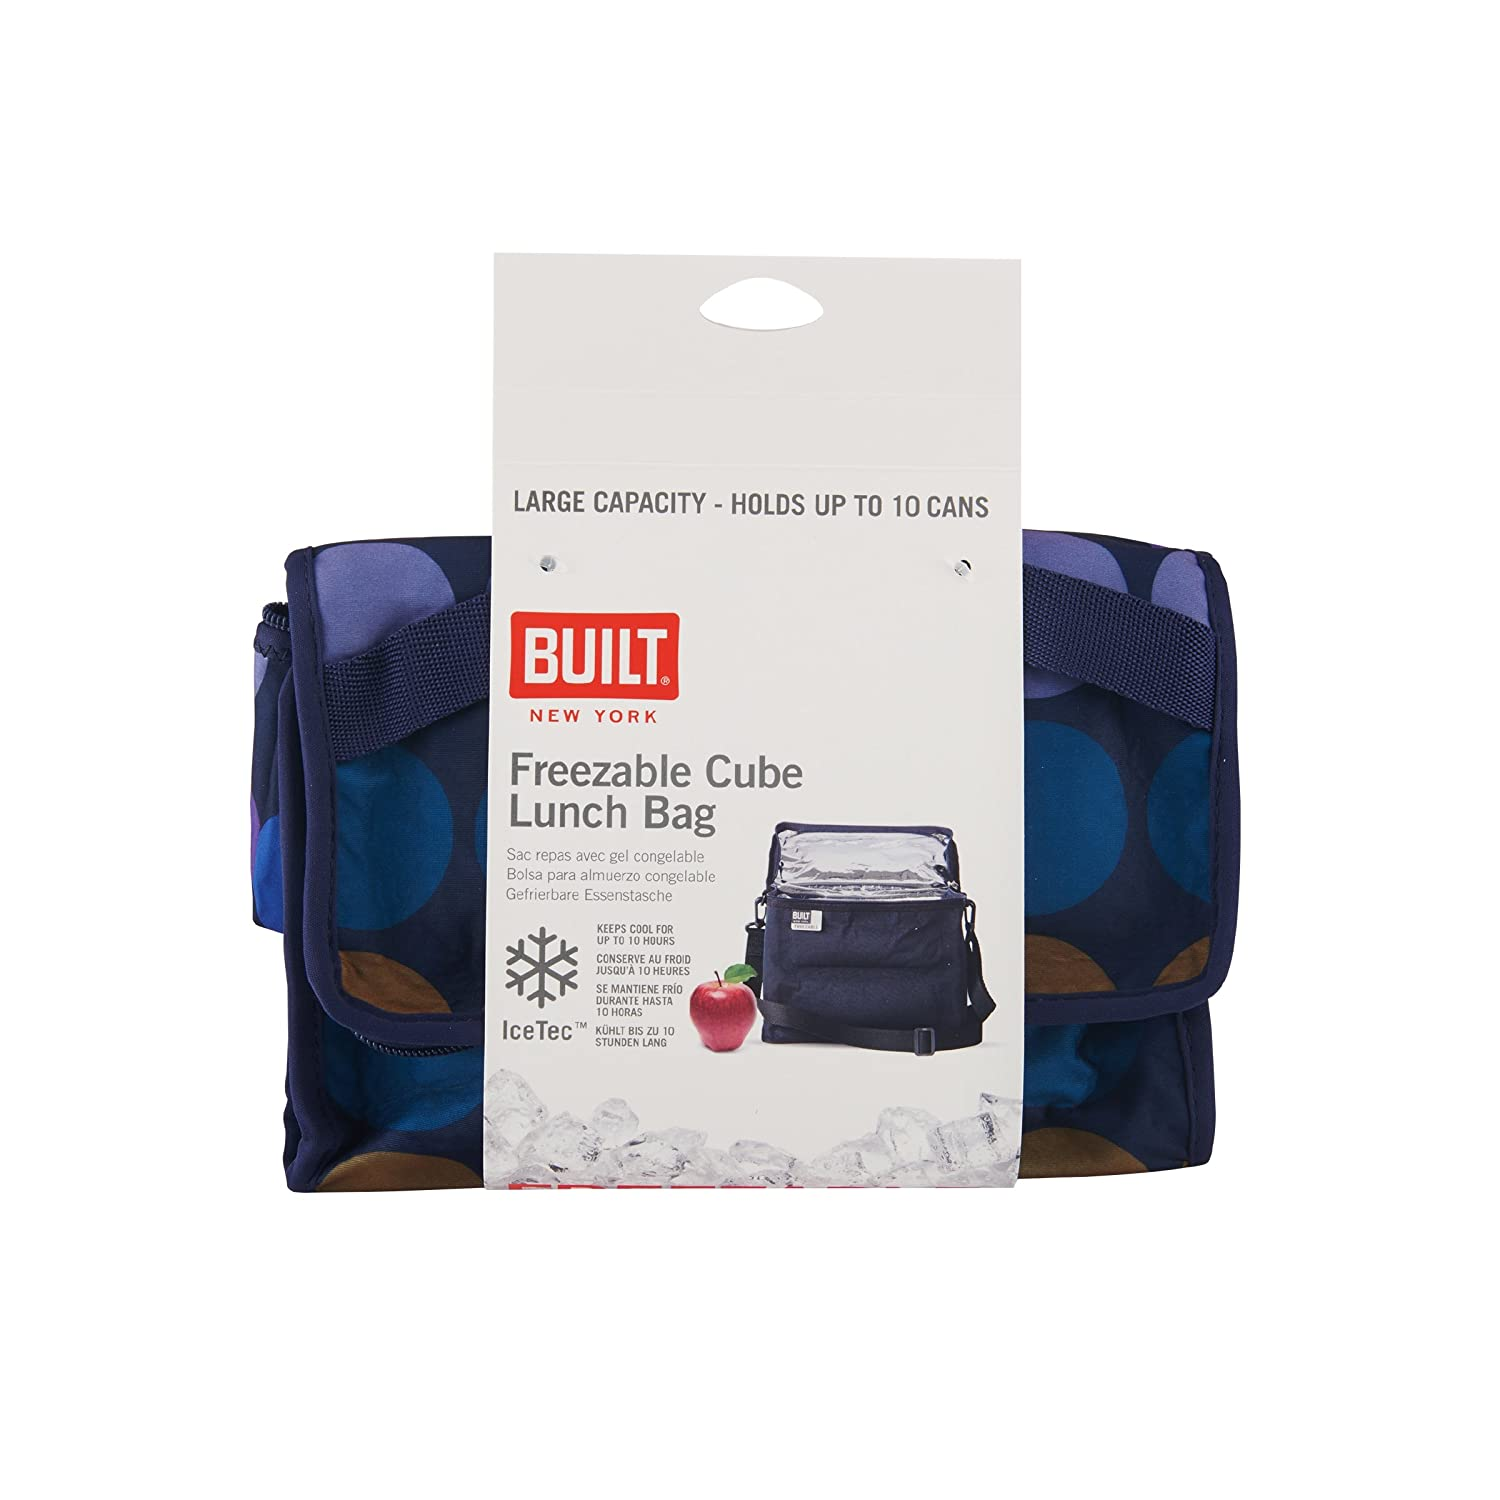 BUILT NY IceTec Freezable Lunch Cube with Zip Closure, Plum Dot